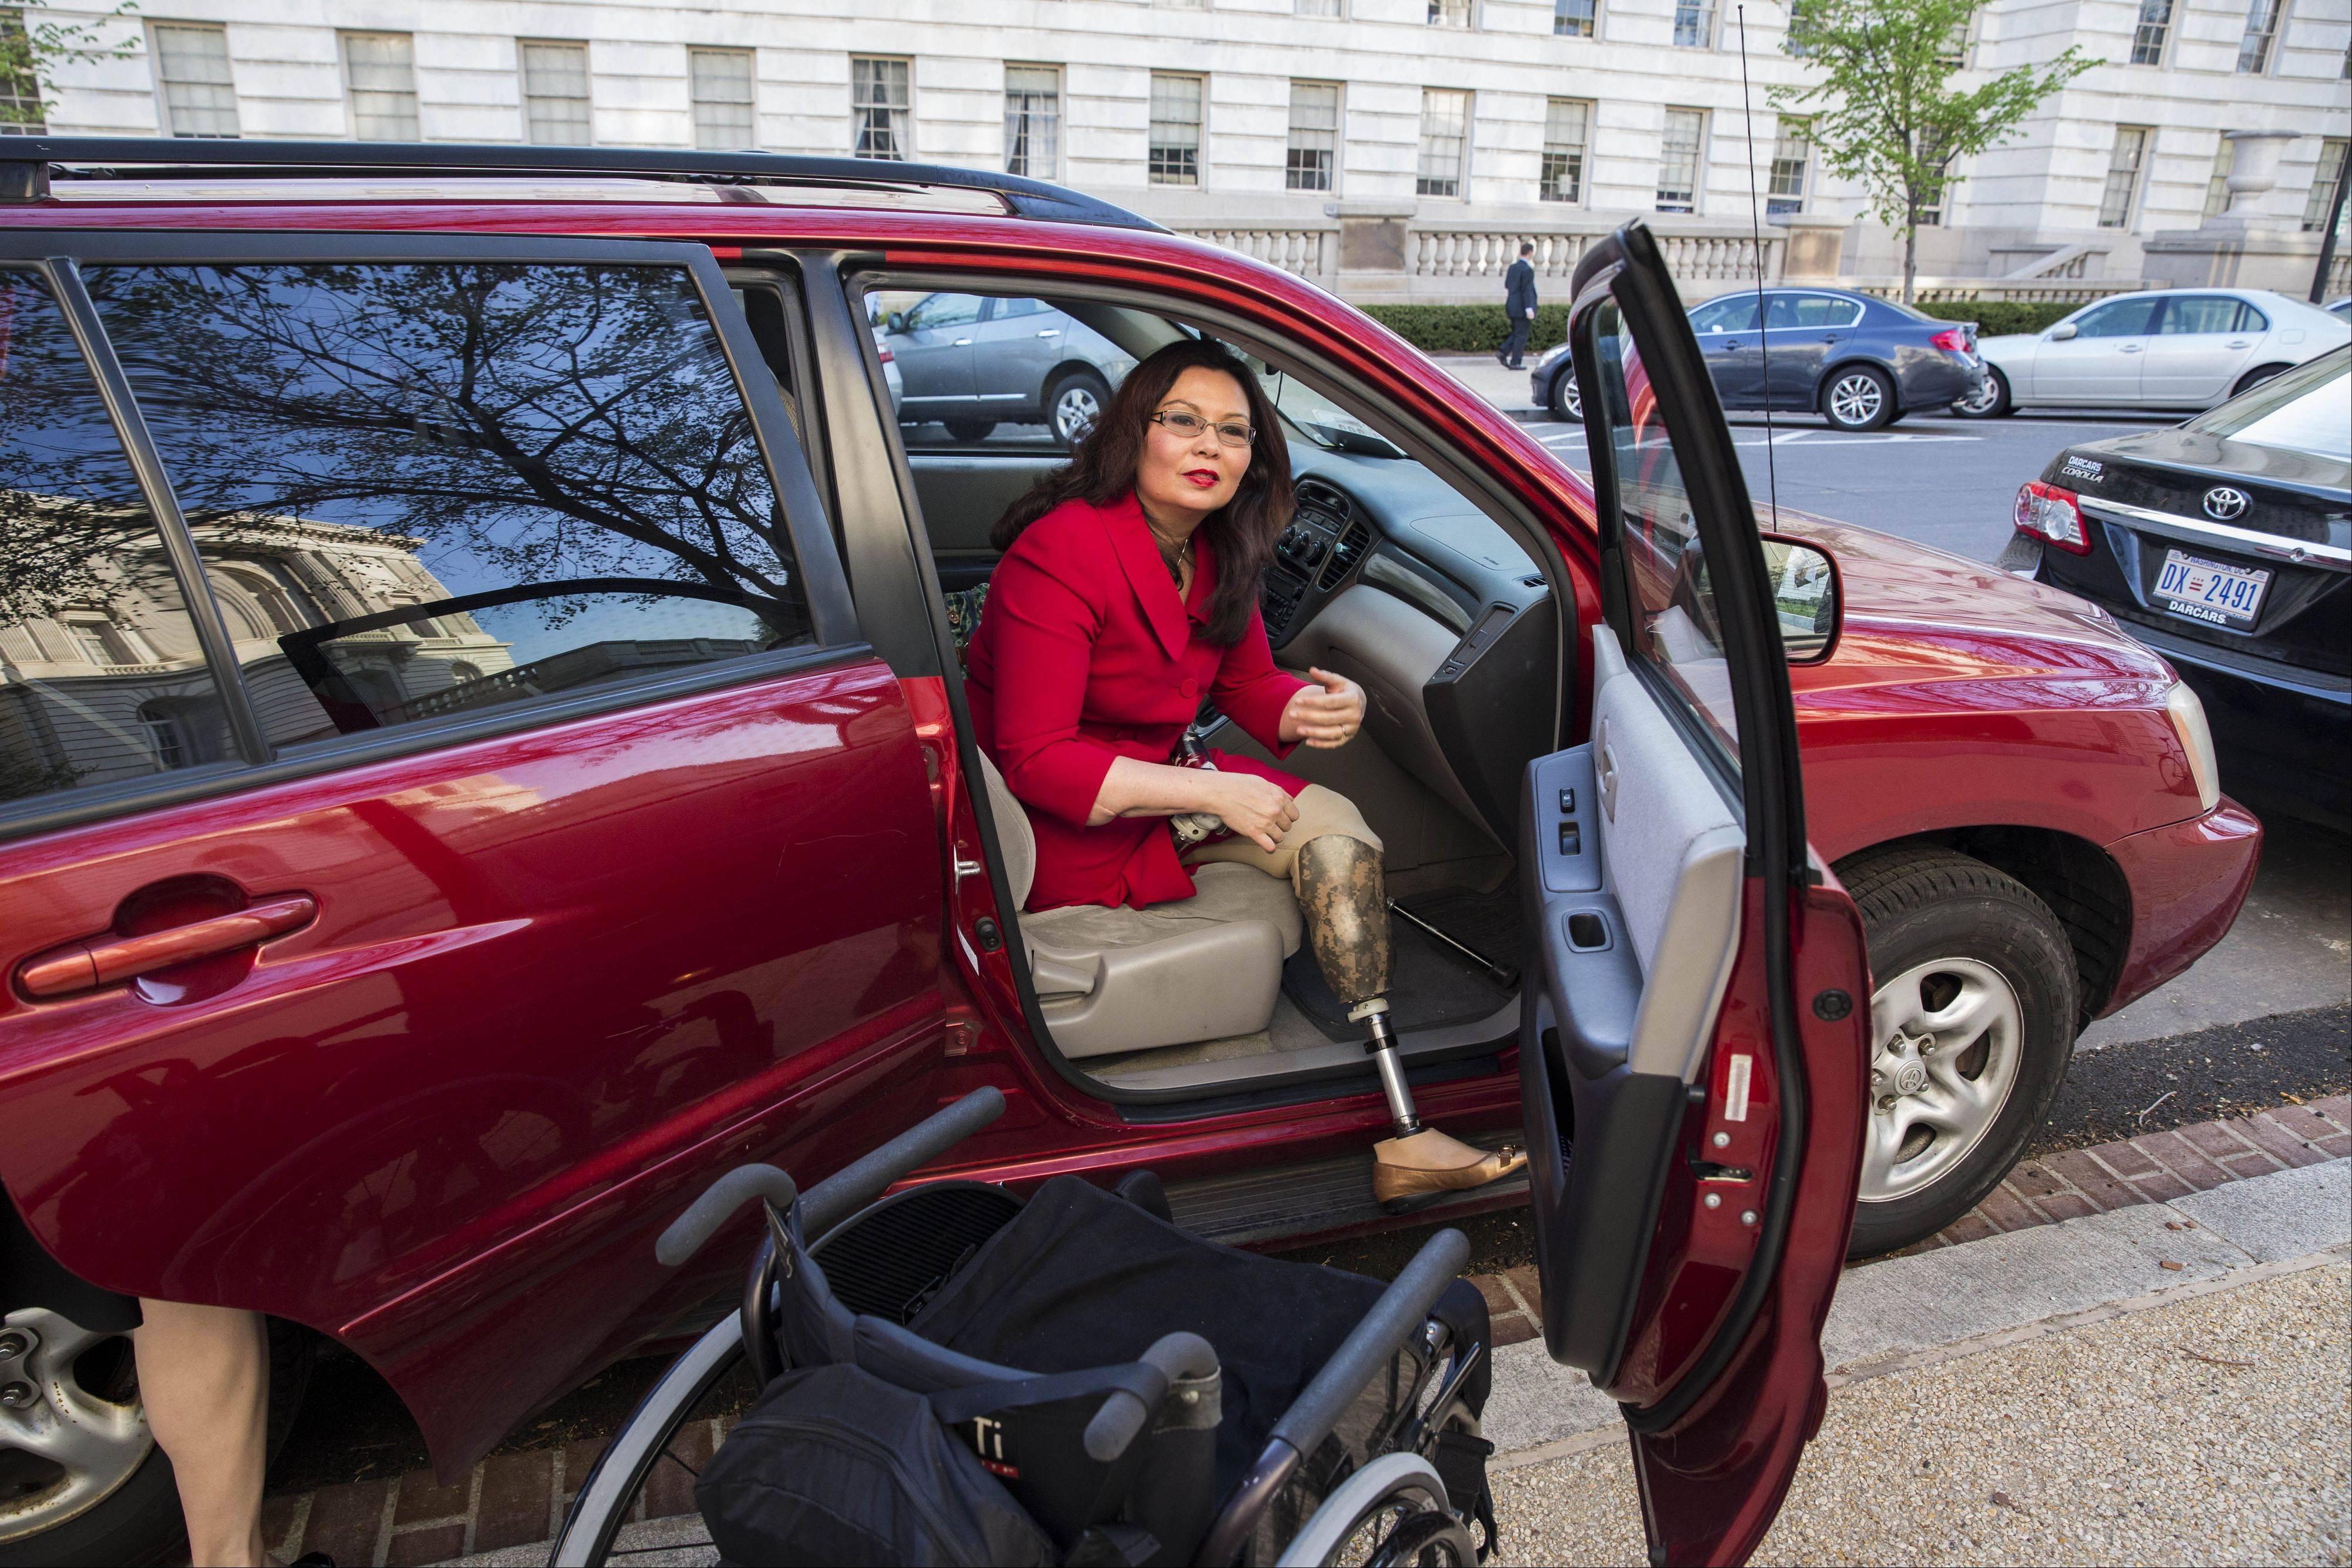 Democratic U.S. Rep. Tammy Duckworth, a double-amputee Iraq War veteran, aims to be a voice for both veteran and disability issues.